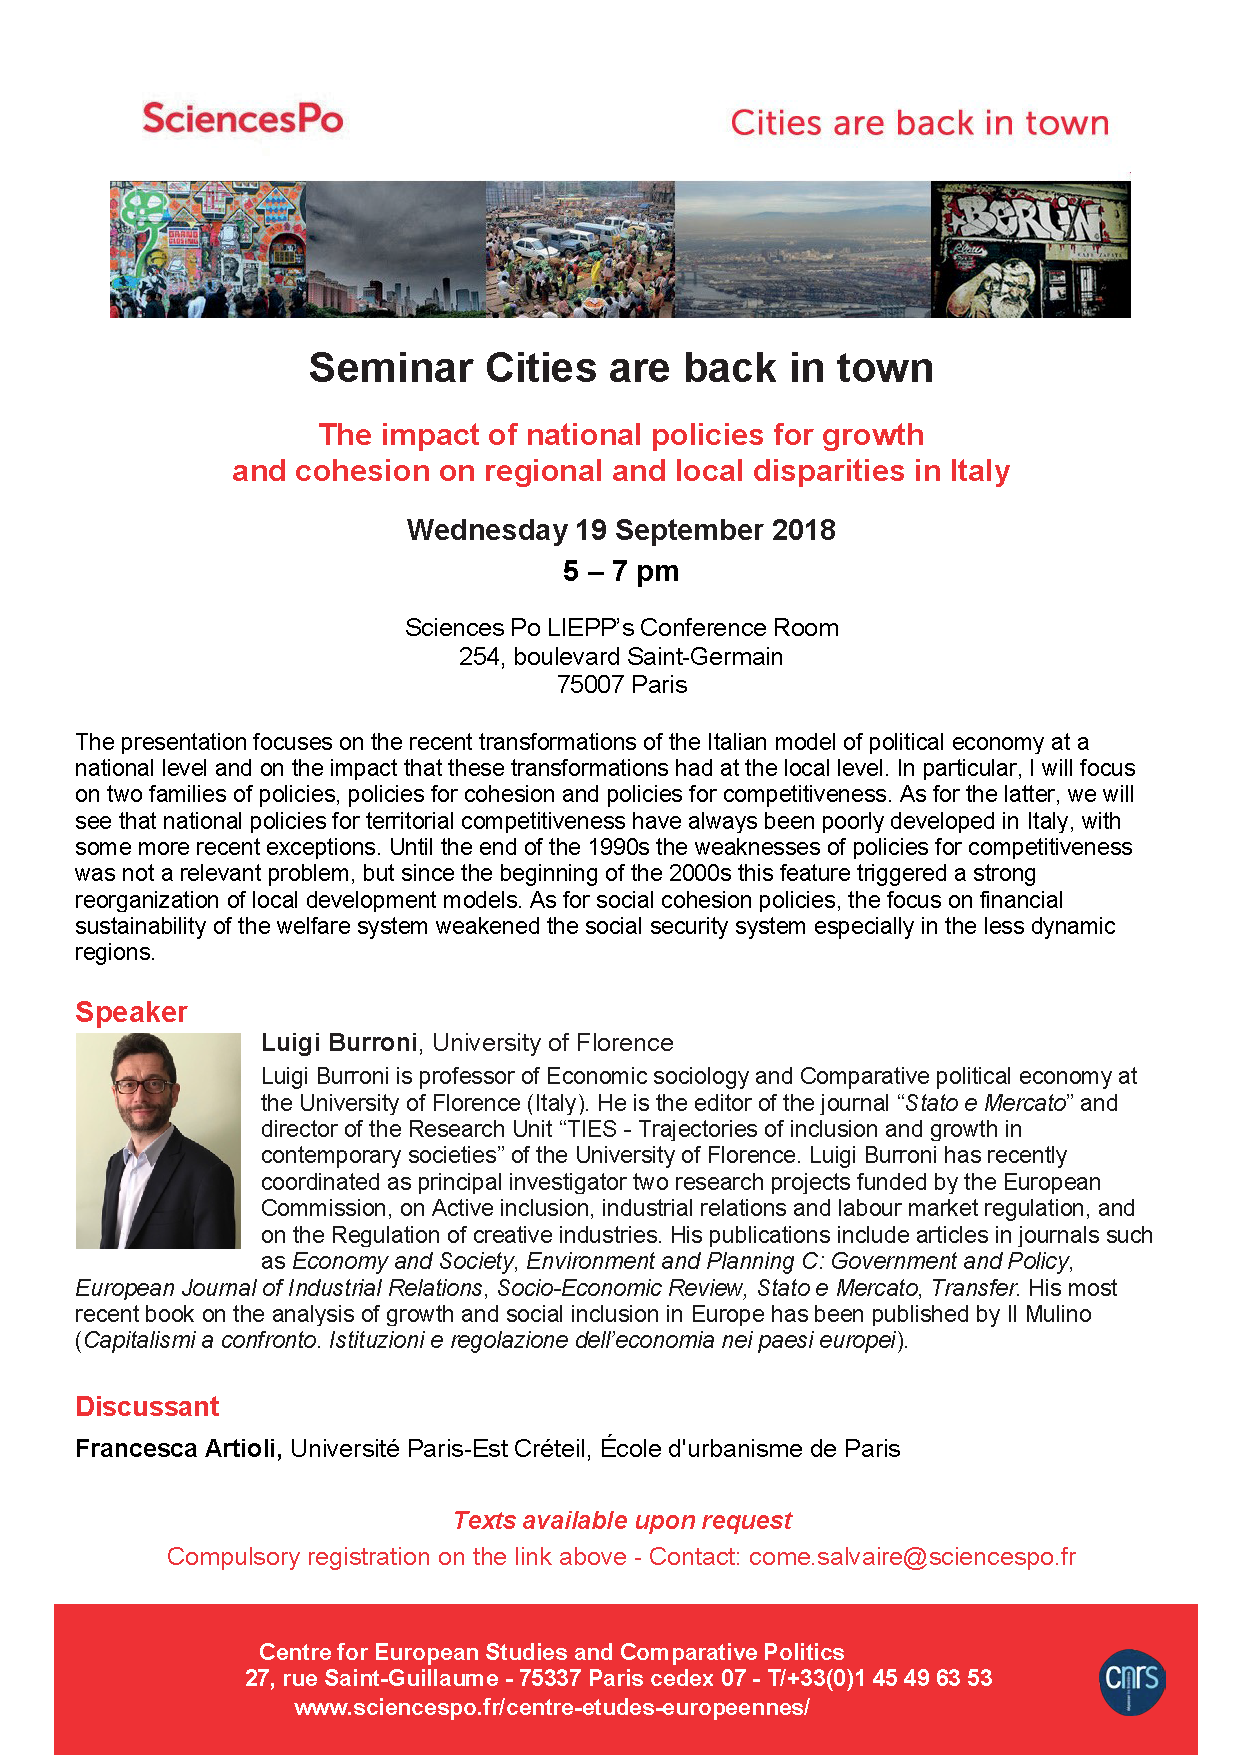 [Séminaire Cities are back in Town] Luigi Burroni, « The impact of national policies for growth and cohesion on regional and local disparities in Italy », Mercredi 19 septembre 2018, 17-19h